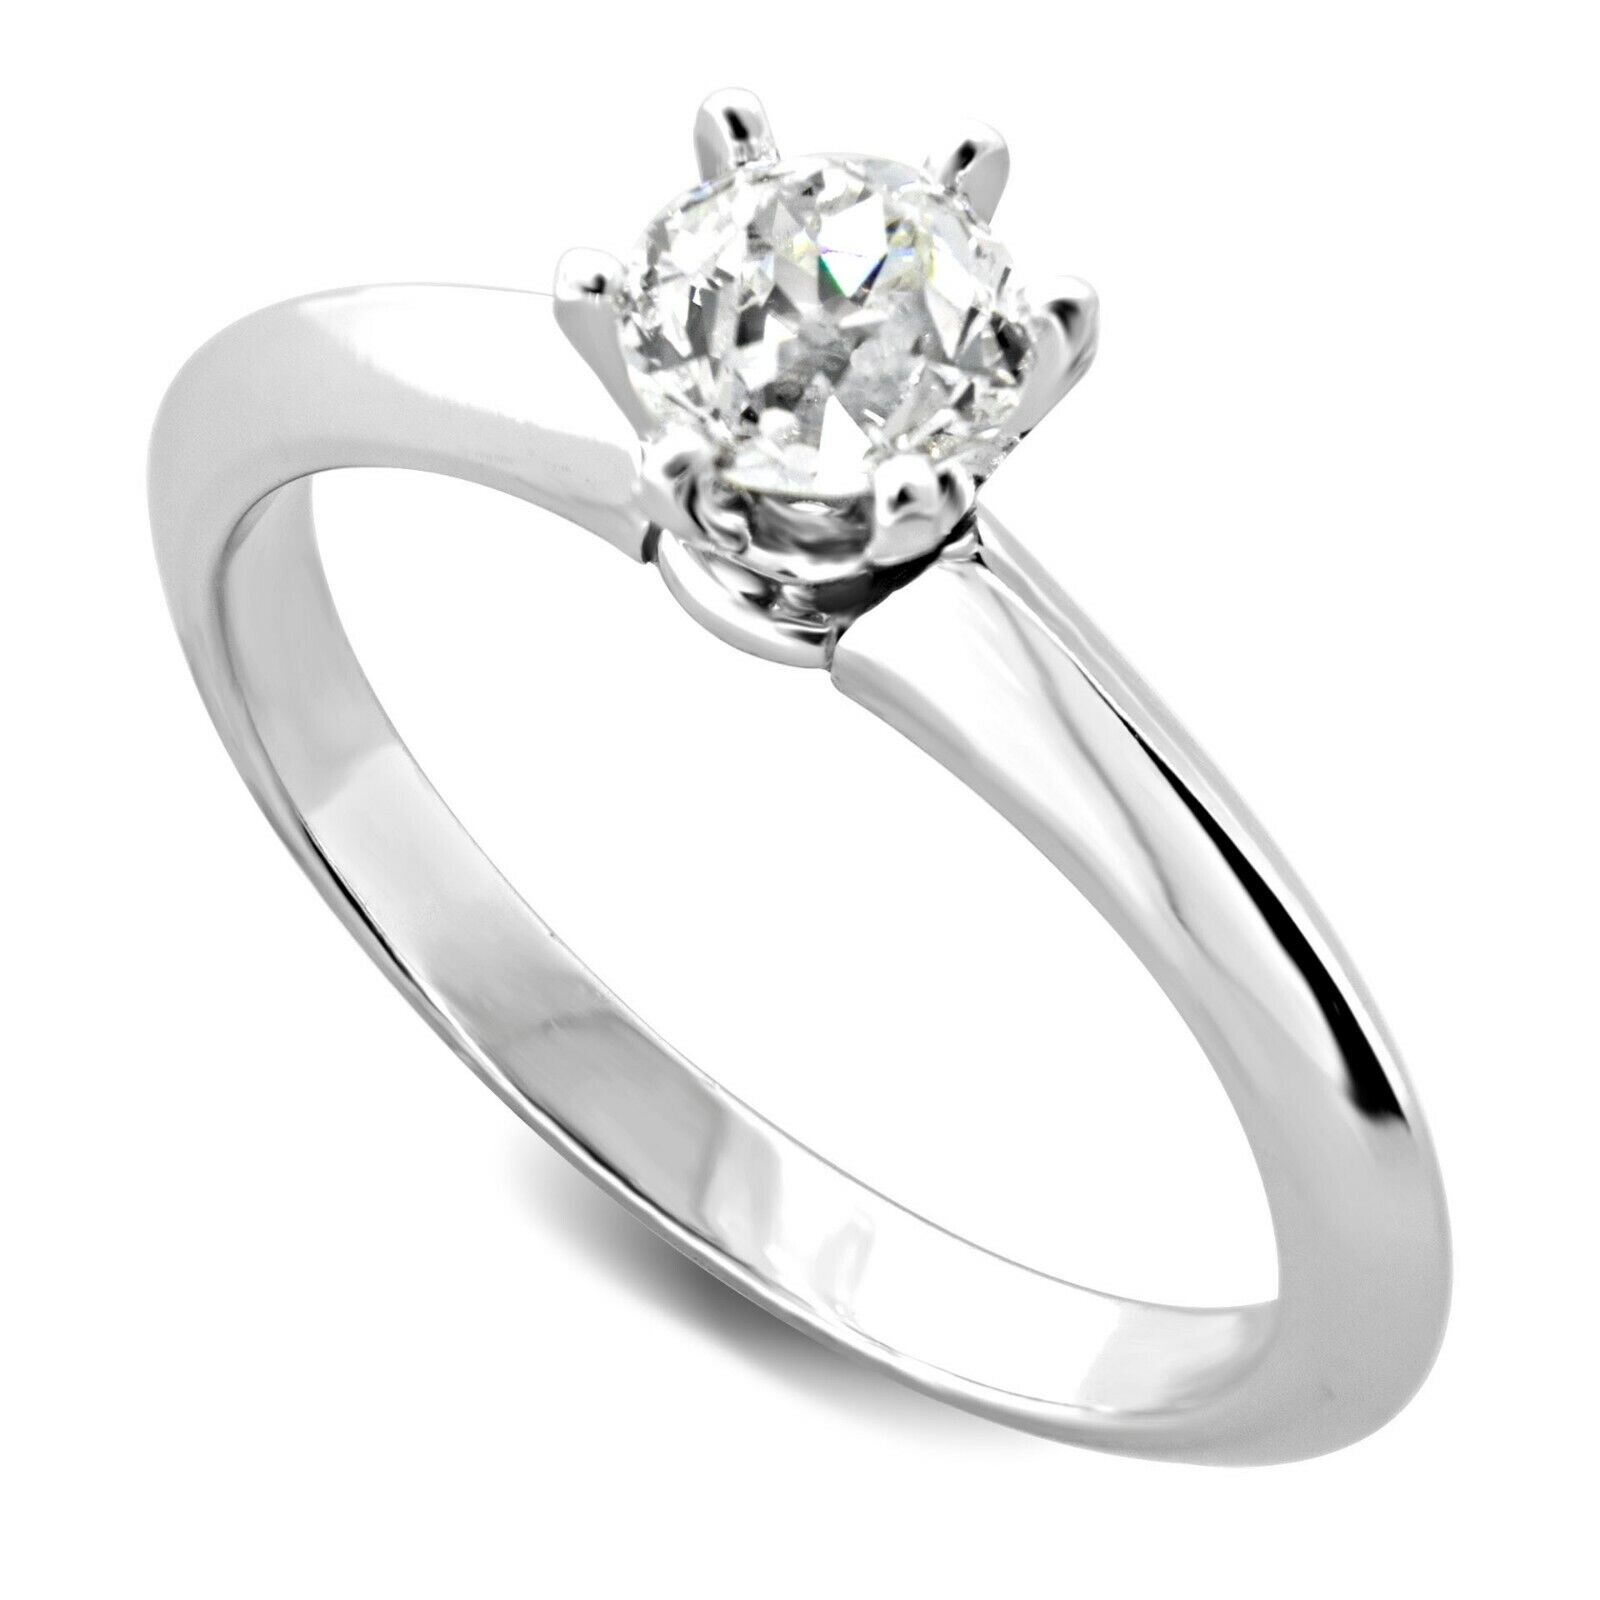 0.60 Carat GIA Certified Diamond Solitaire Engagement Ring in 14k White Gold